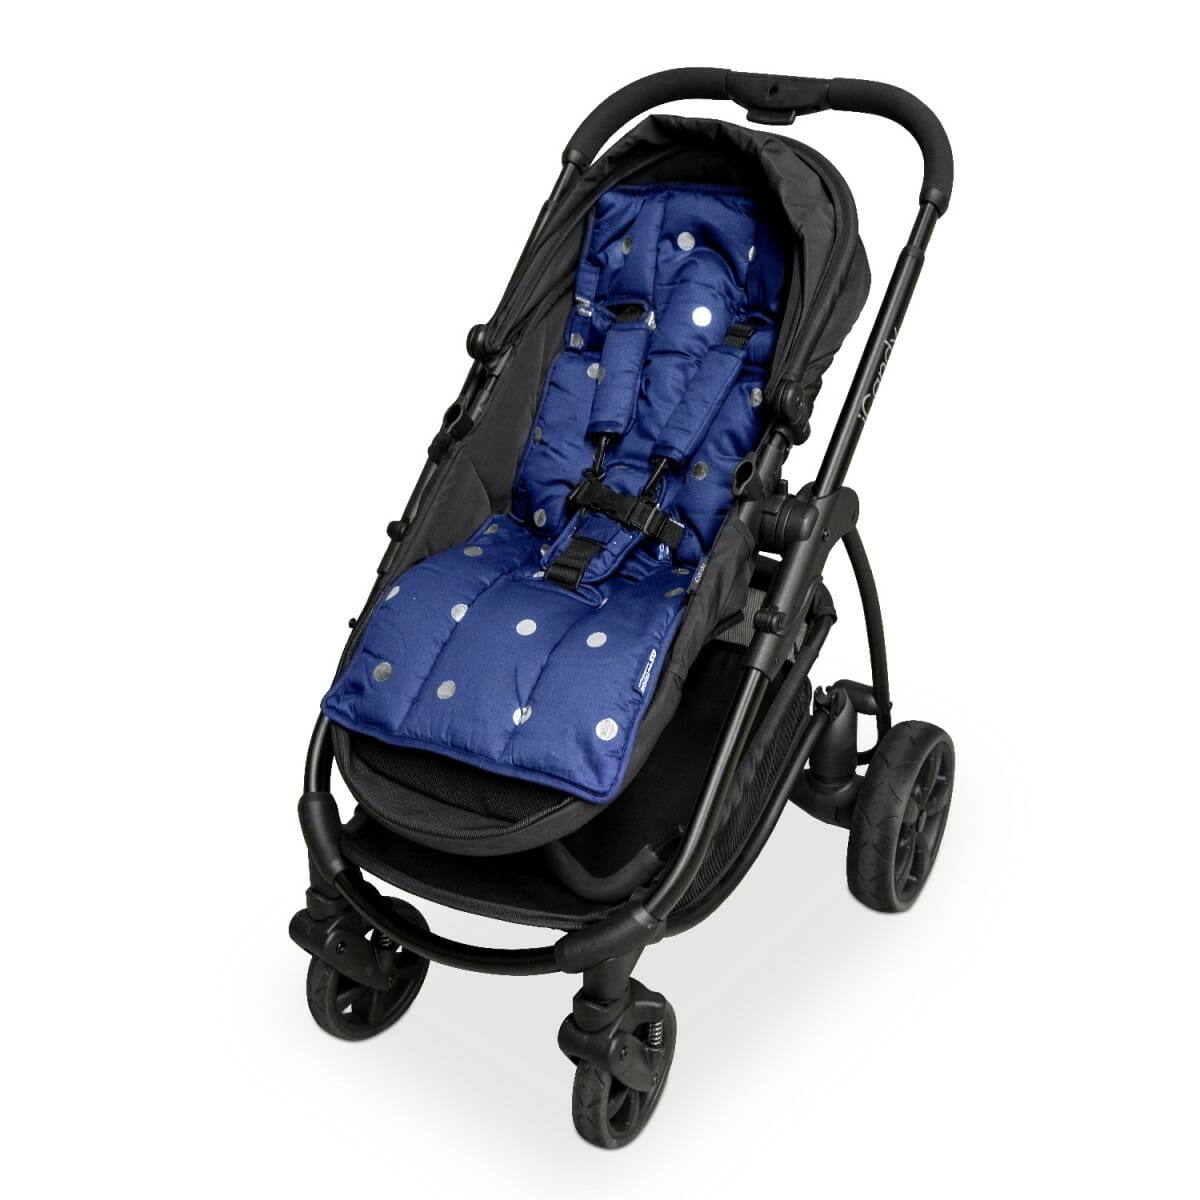 Outlook Get Foiled Pram Liner Navy w Silver Spots harness White-Background